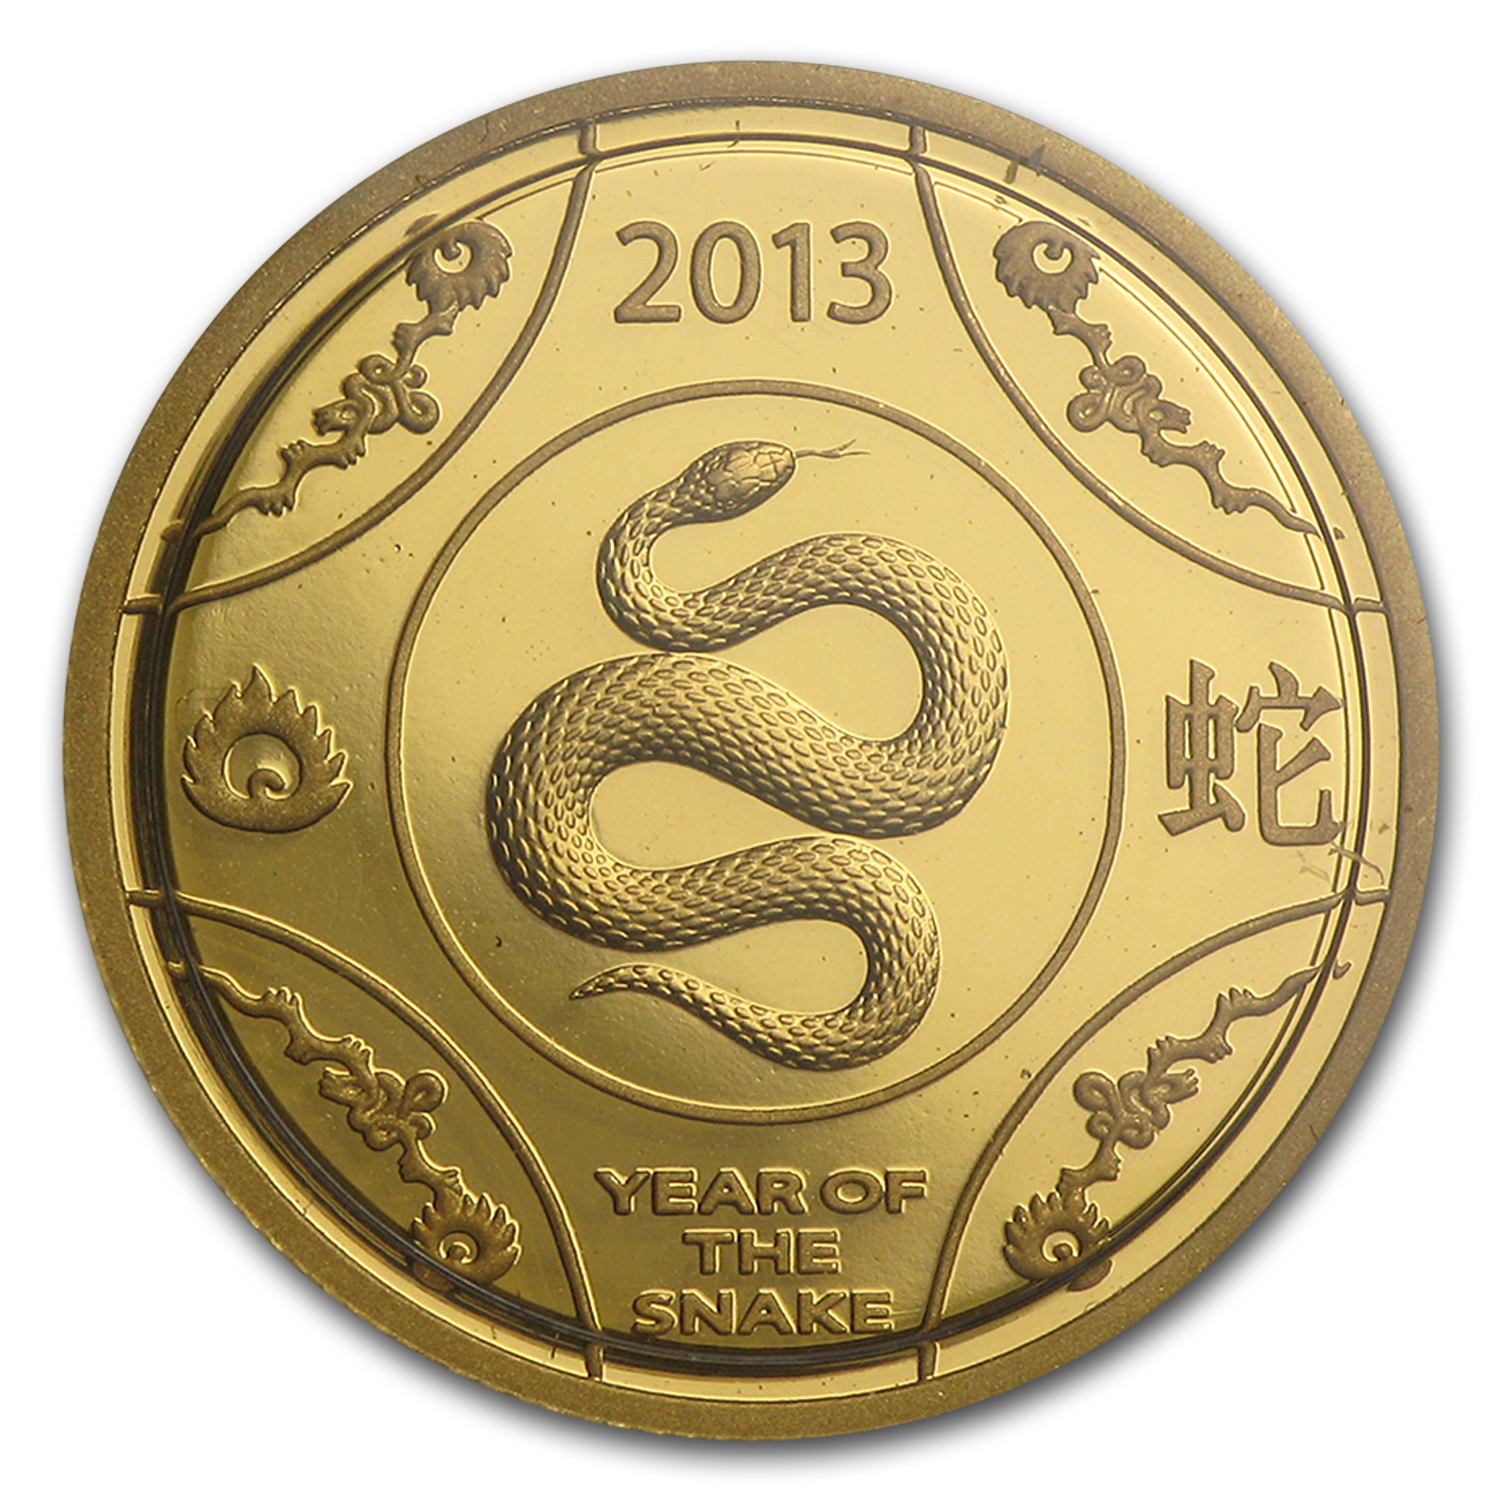 2013 Australia 1/10 oz Proof Gold Year of the Snake